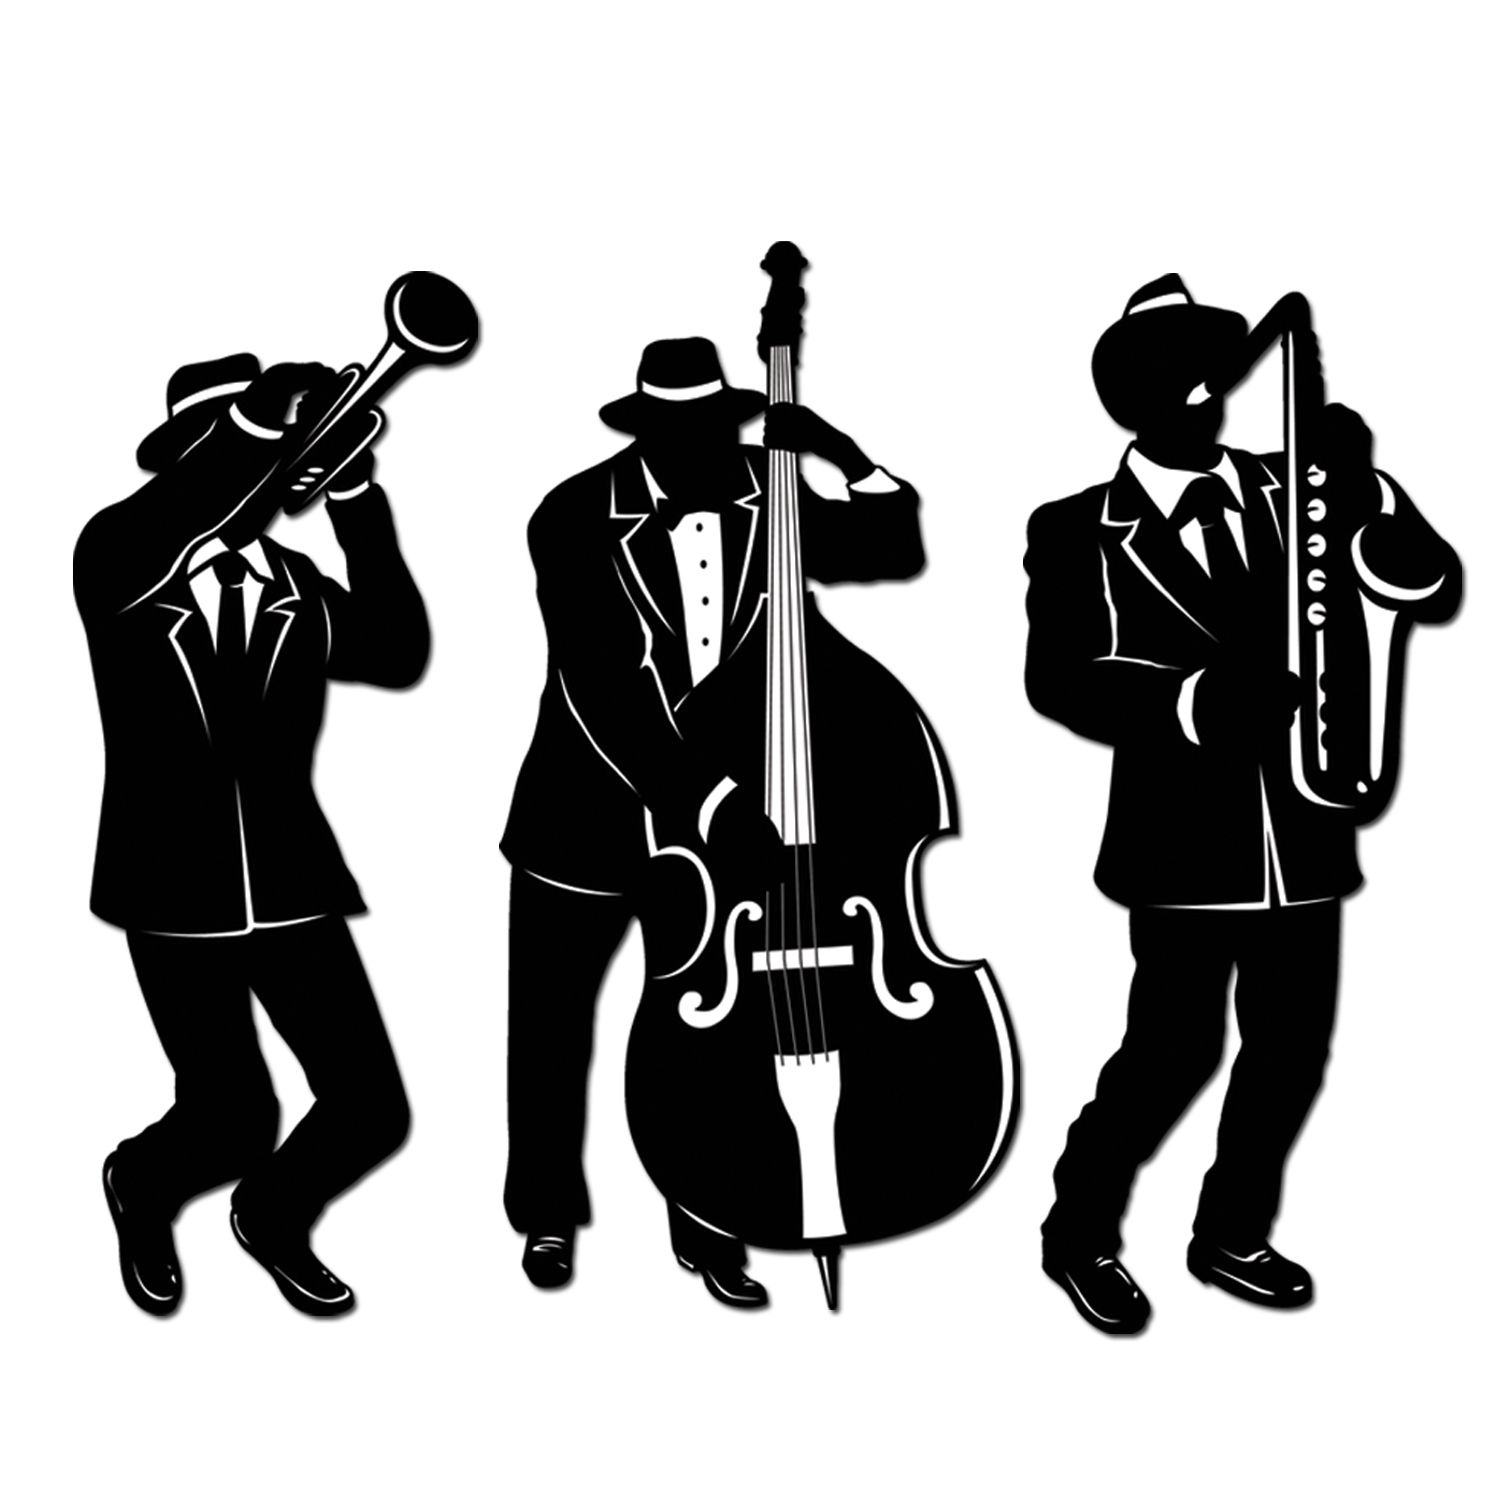 jazz trio silhouettes printed 2 sides bzanyparty cost 3 60 Harlem 1980s jazz trio silhouettes printed 2 sides bzanyparty cost 3 60